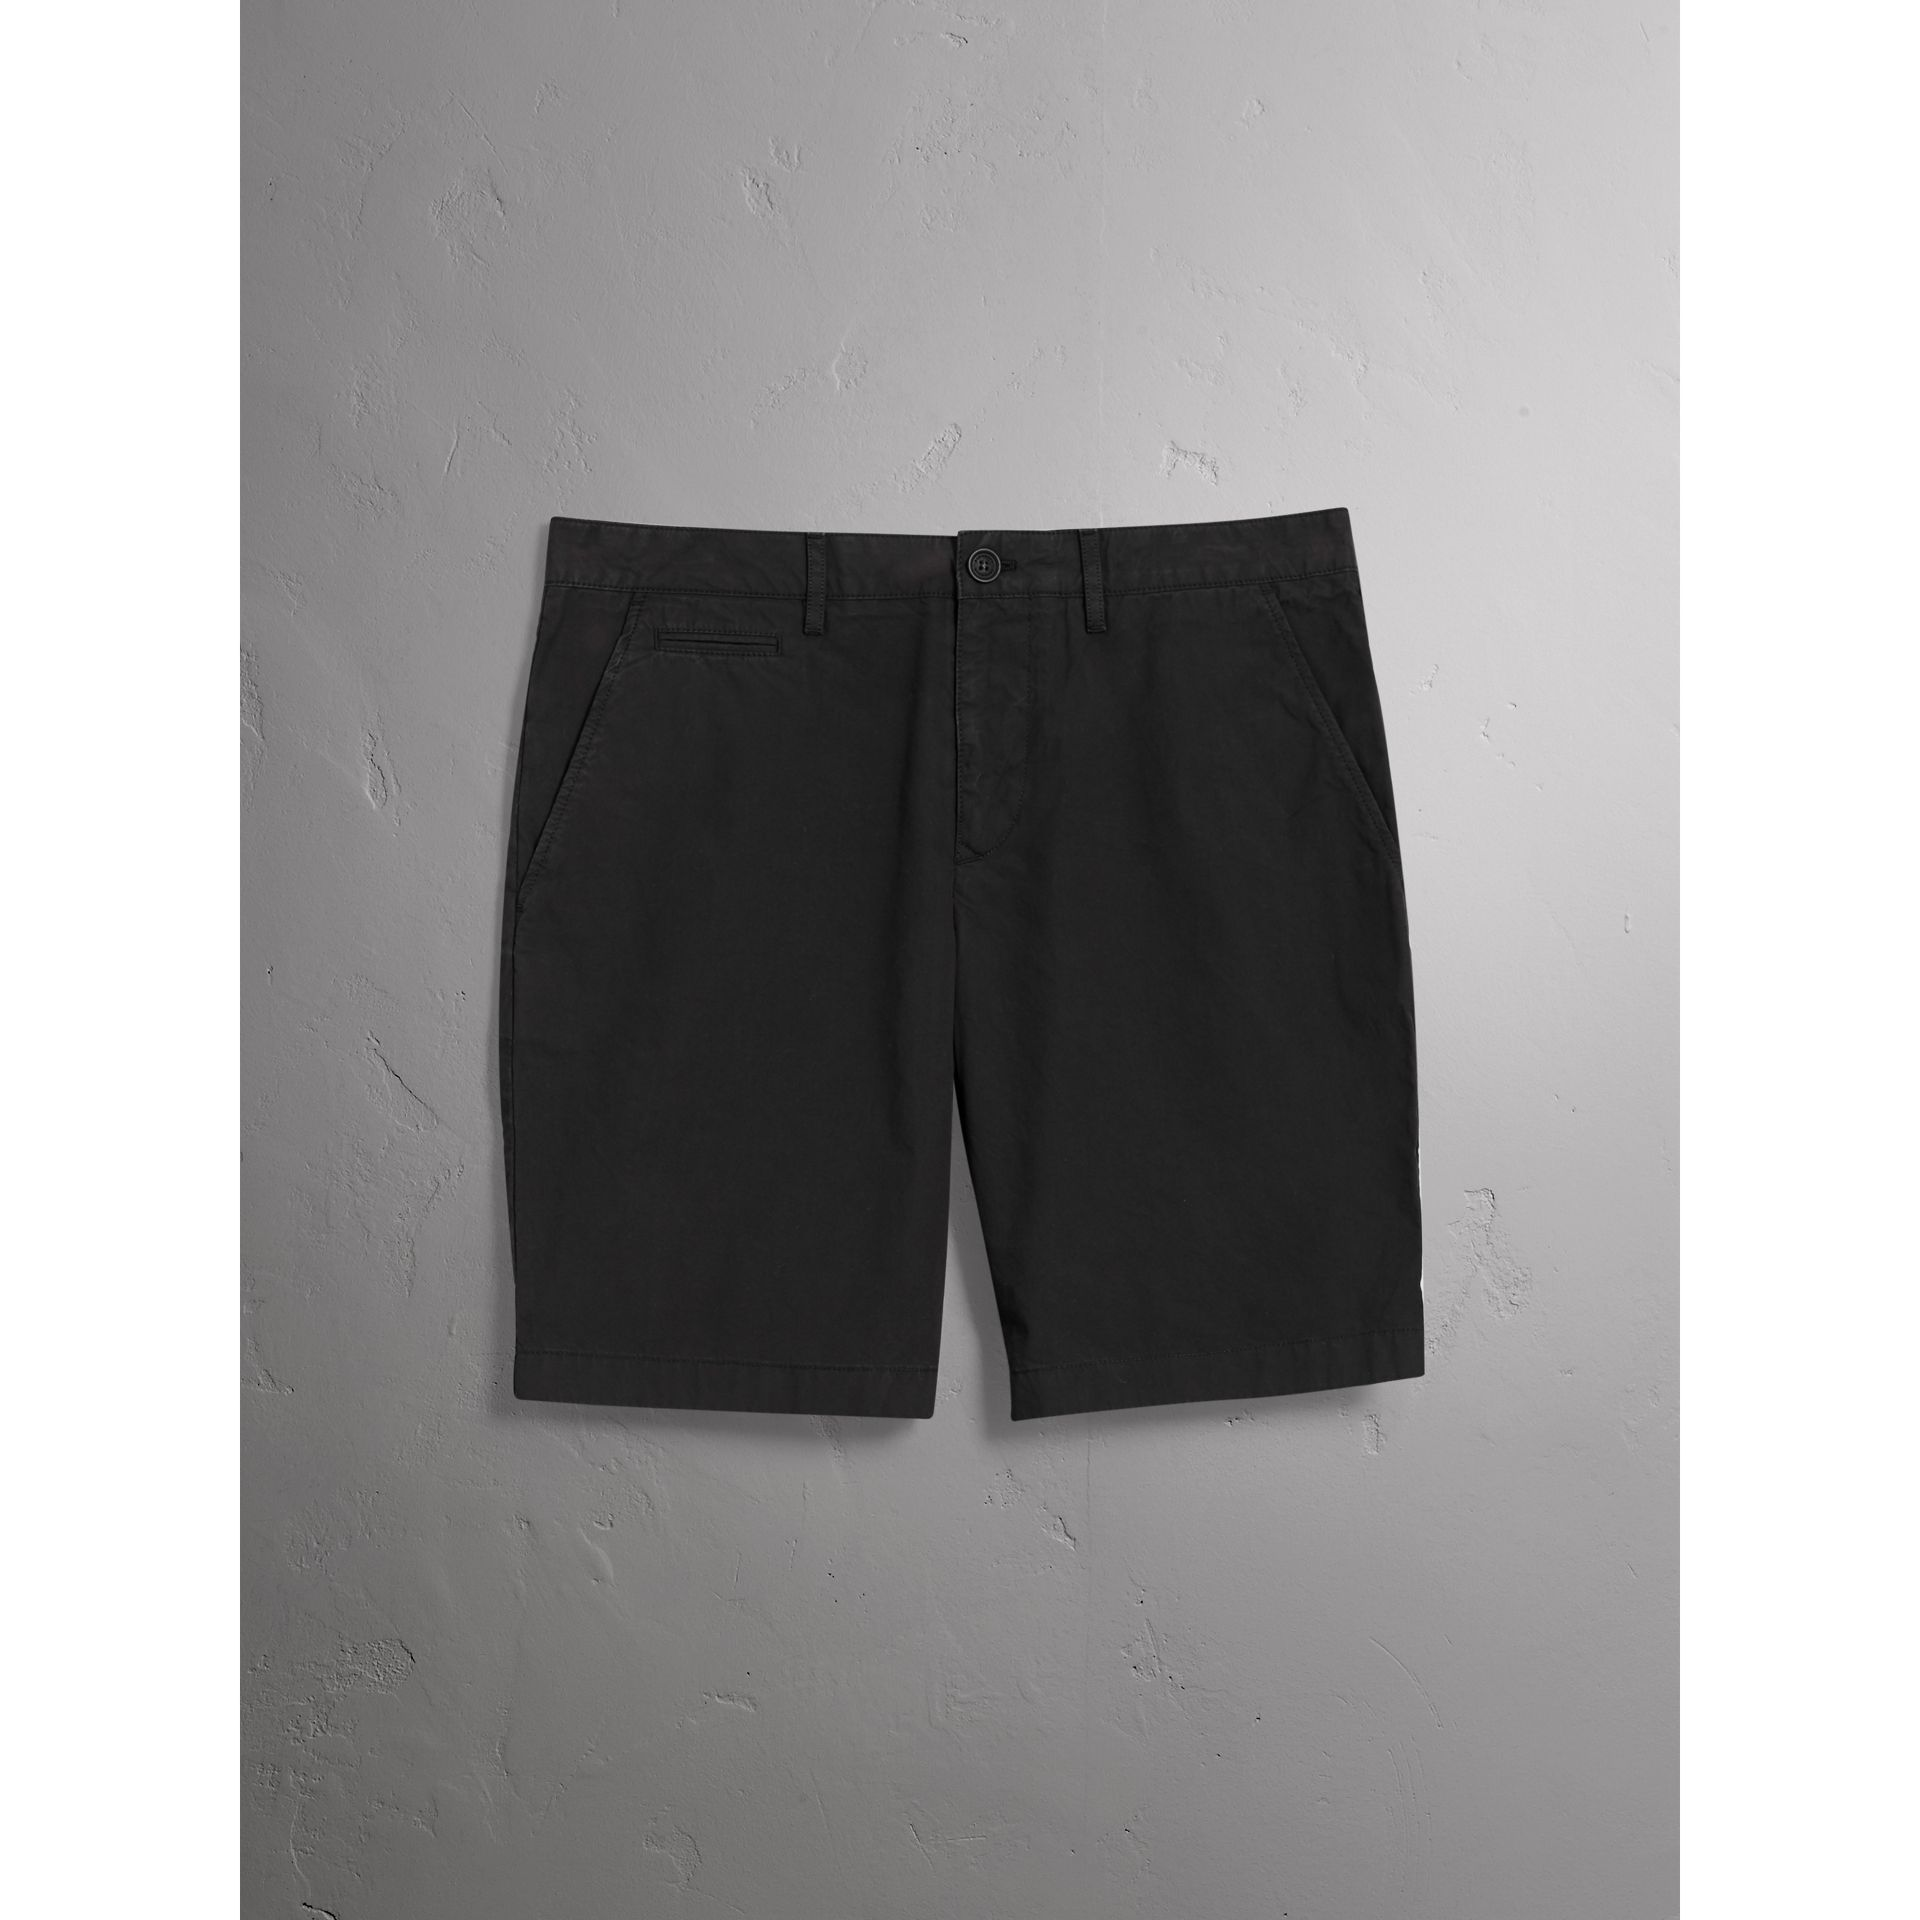 Short chino en popeline de coton (Noir) - Homme | Burberry - photo de la galerie 4